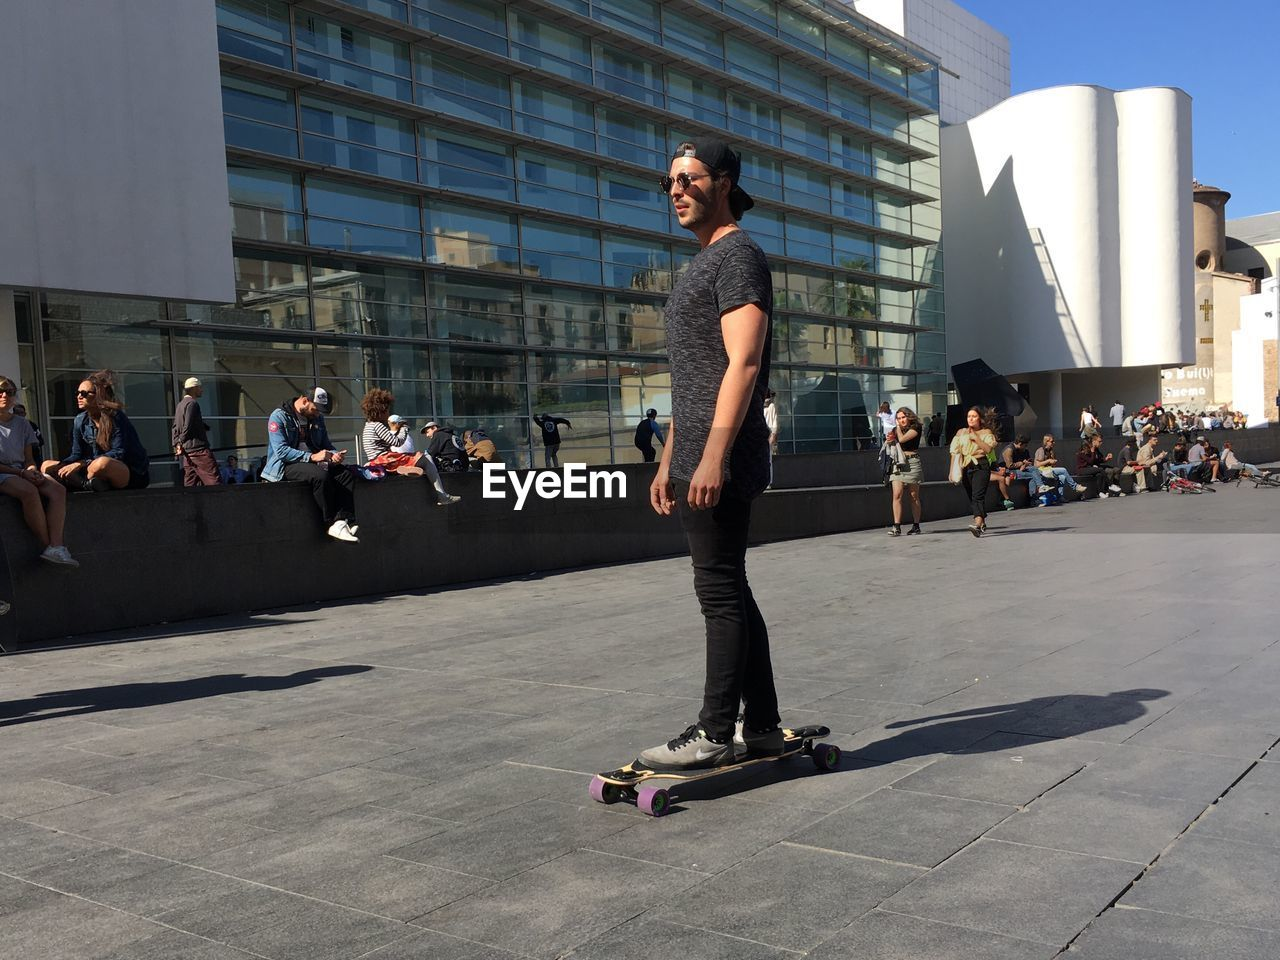 skateboard, skill, building exterior, built structure, lifestyles, real people, leisure activity, day, architecture, balance, outdoors, sunlight, full length, city, skateboard park, stunt, sport, men, people